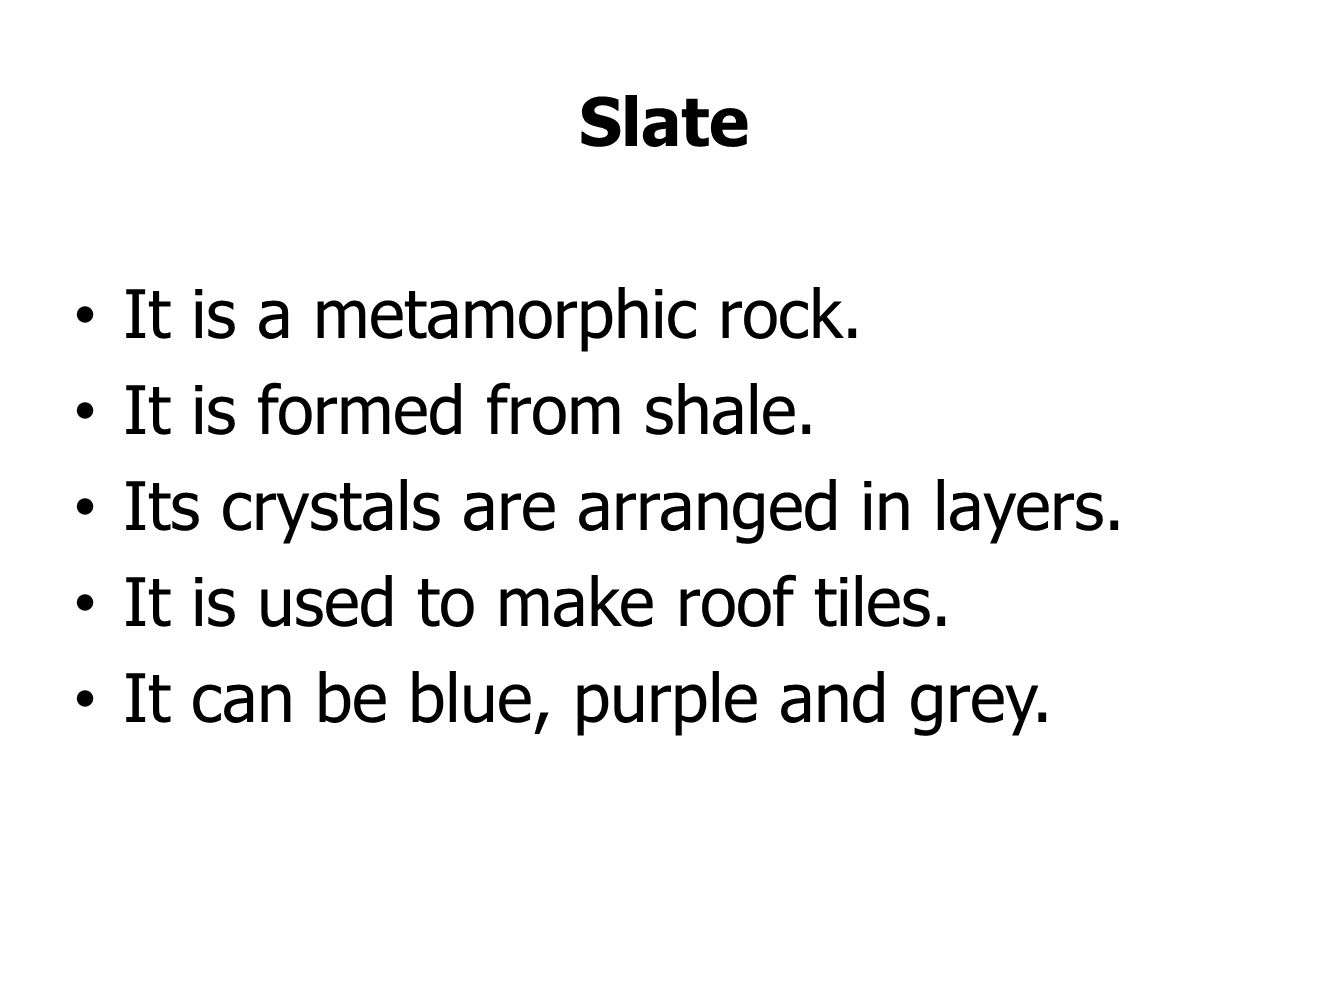 Slate It is a metamorphic rock. It is formed from shale. Its crystals are arranged in layers. It is used to make roof tiles.